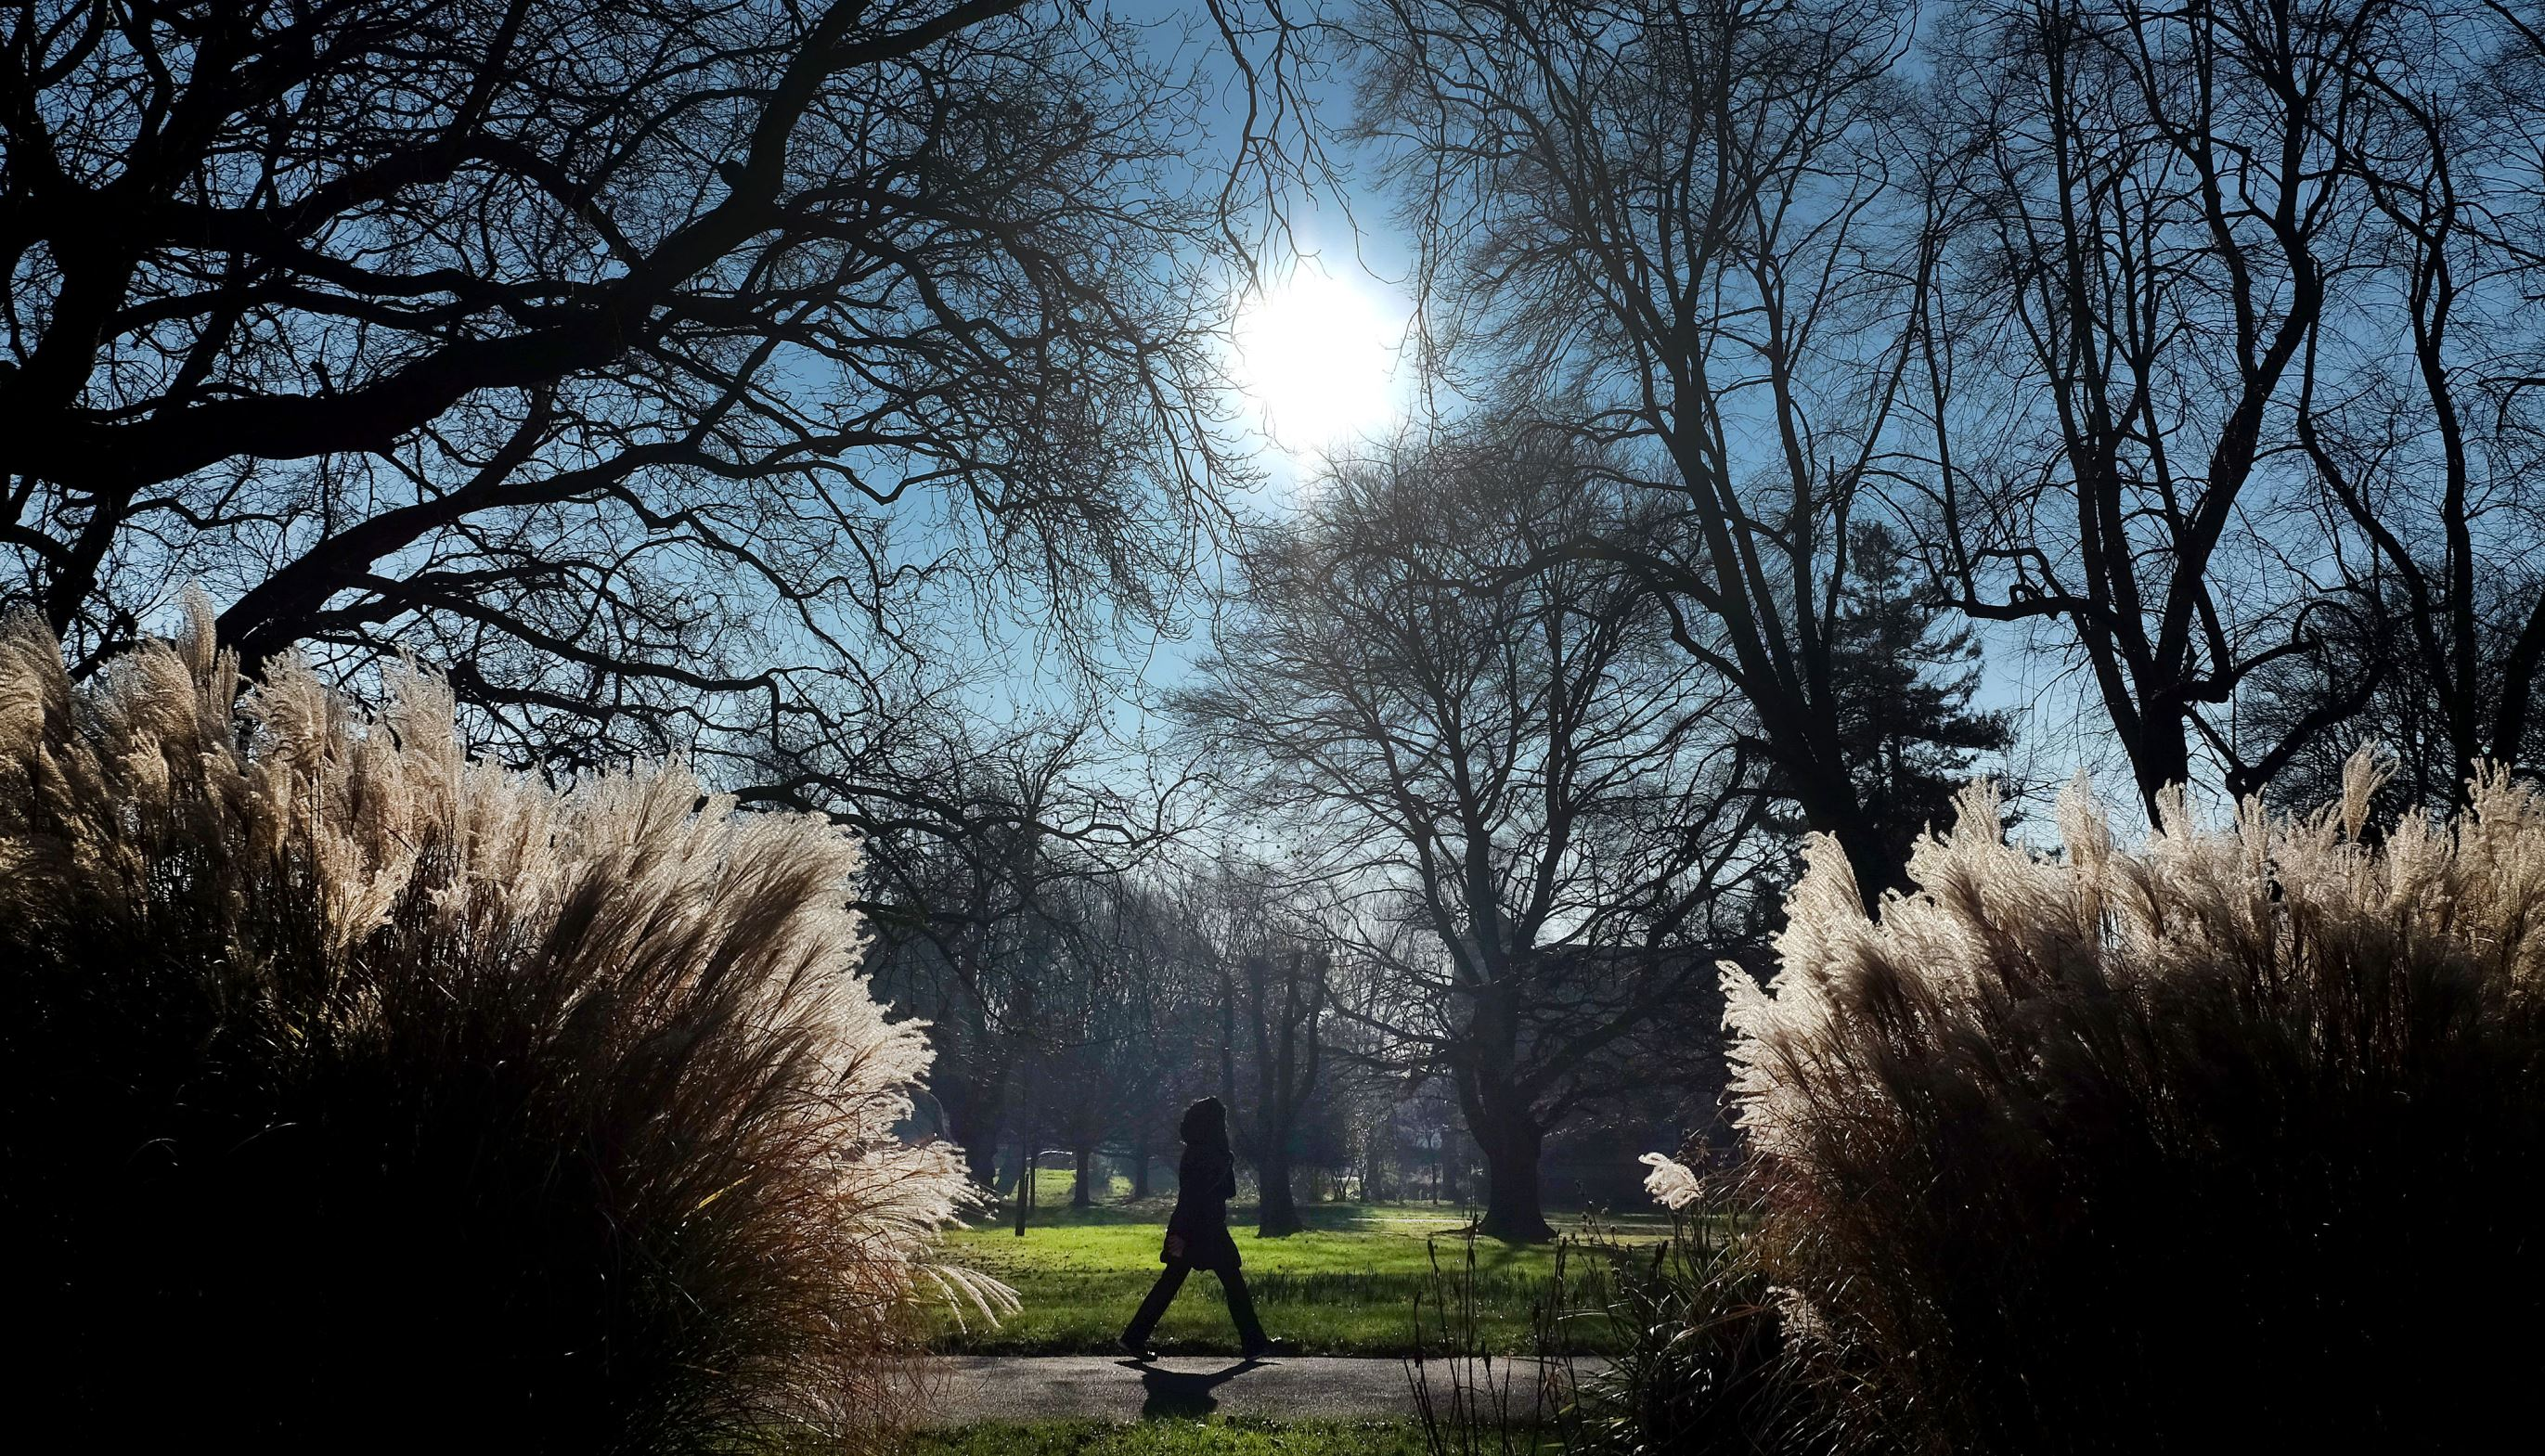 Слайд 14 из 86: A pedestrian walks past ornamental grasses in a park in London, Wednesday, Jan. 20, 2016. Temperatures in London dropped below zero, the lowest this winter yet, with clear skies and plenty of winter sun in the capital. (AP Photo/Kirsty Wigglesworth)